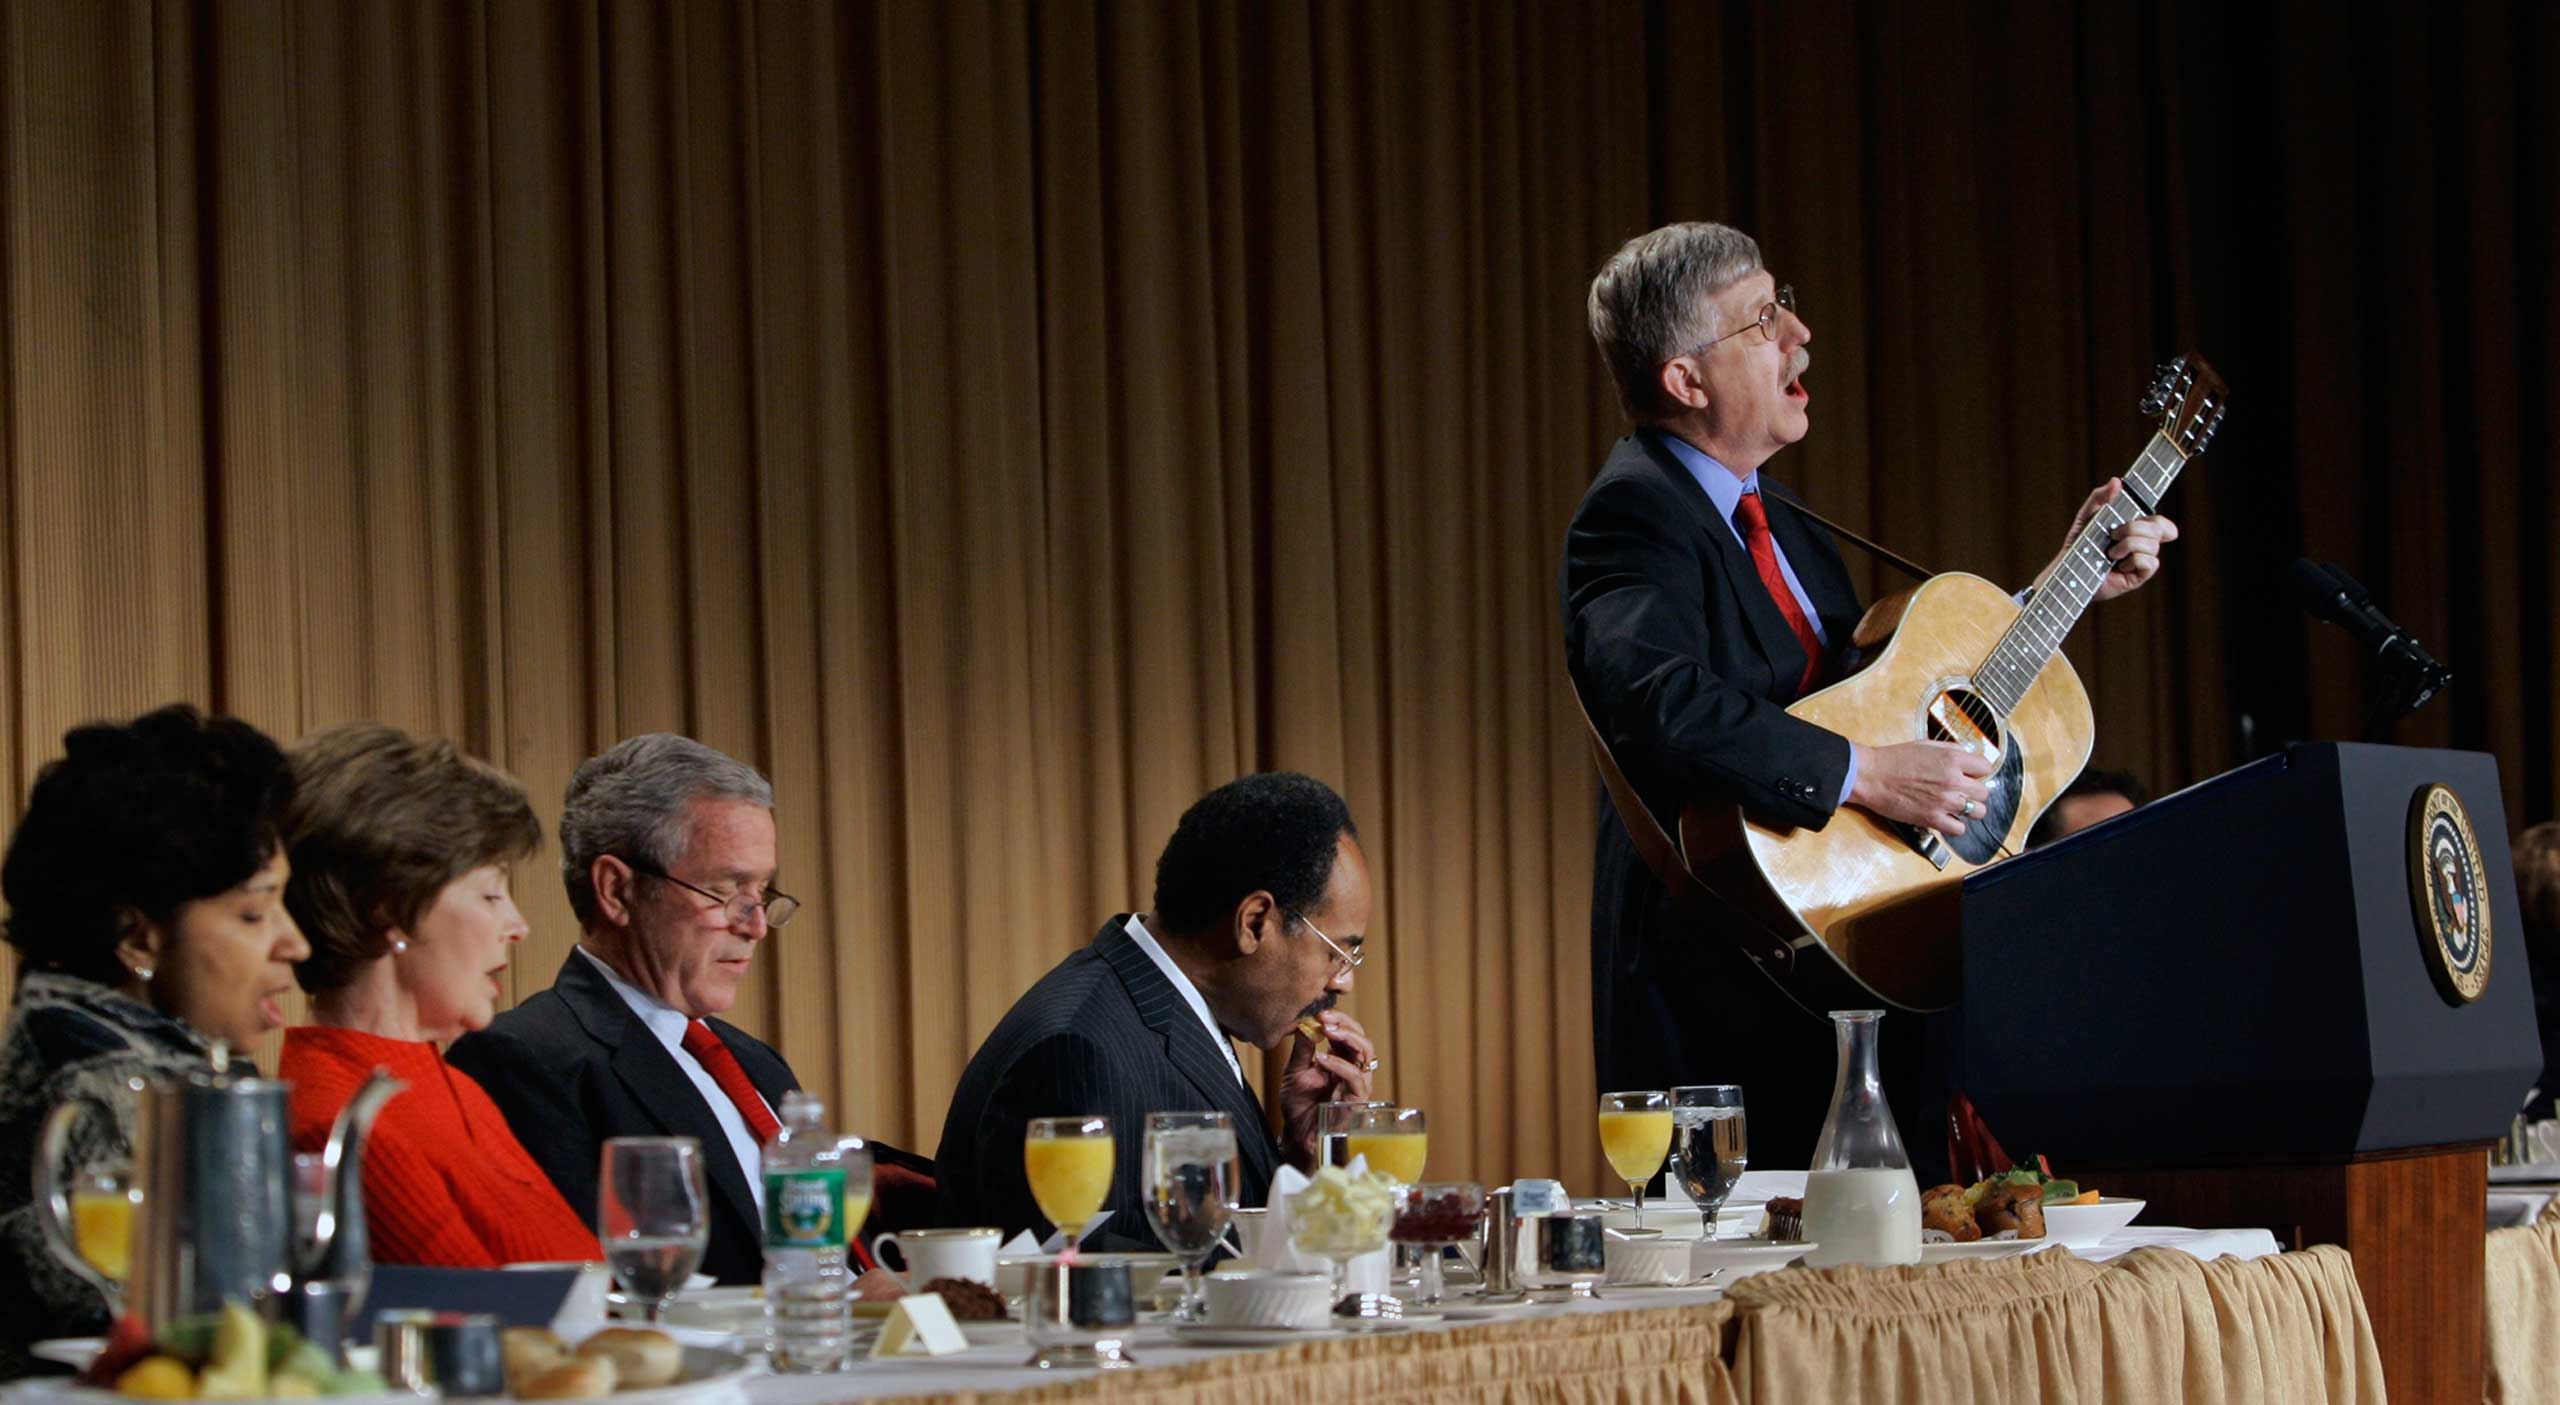 Dr. Francis Collins, head of the Human Genome Project, sings and plays guitar at the 2007 National Prayer Breakfast while President George W. Bush and Democratic Rep. Emanuel Cleaver II watch.